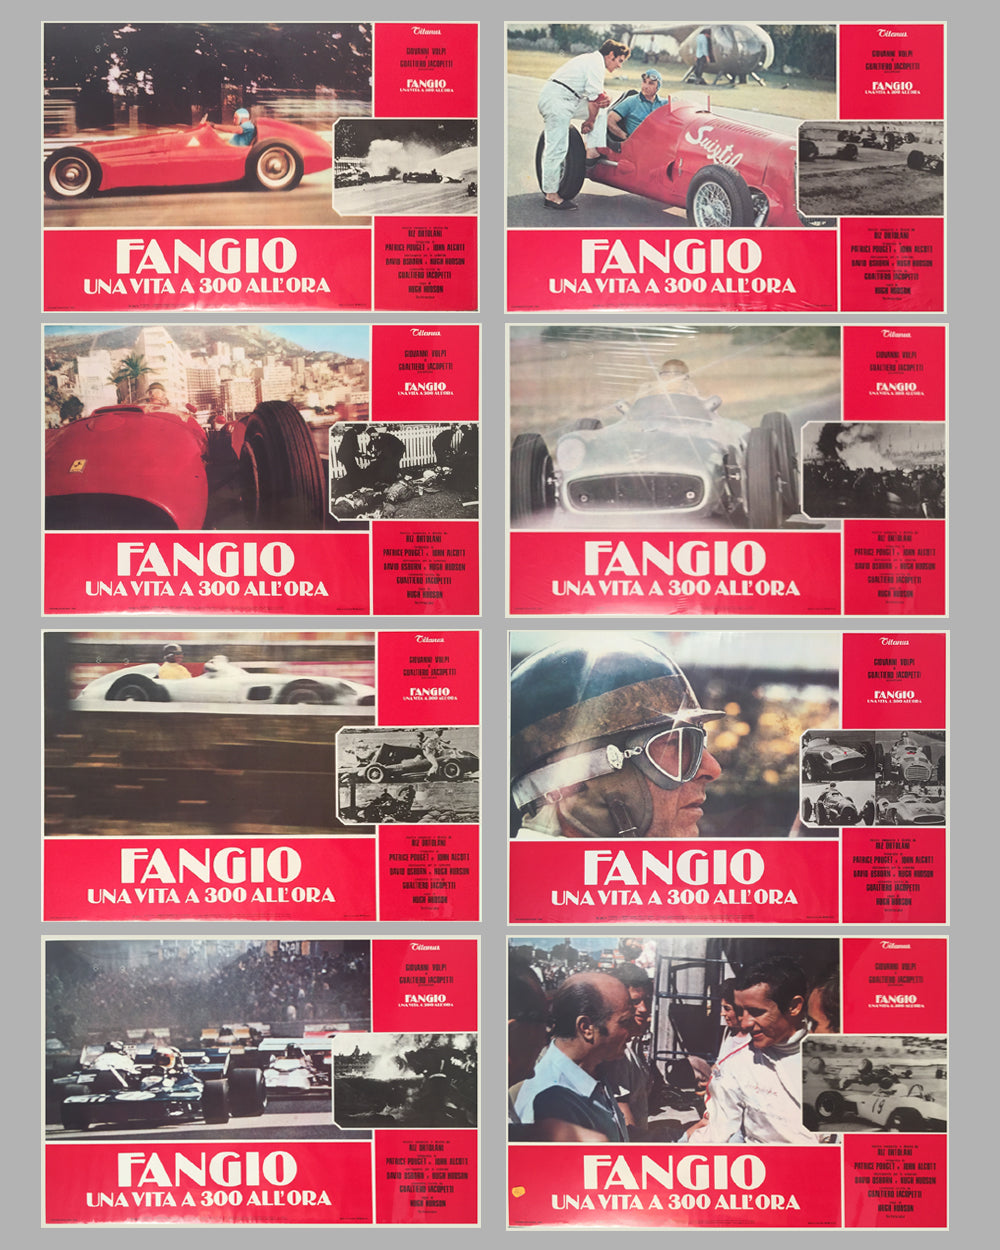 Fangio Una Vita a 300 All'ora collection of 8 lobby movie posters, 1981